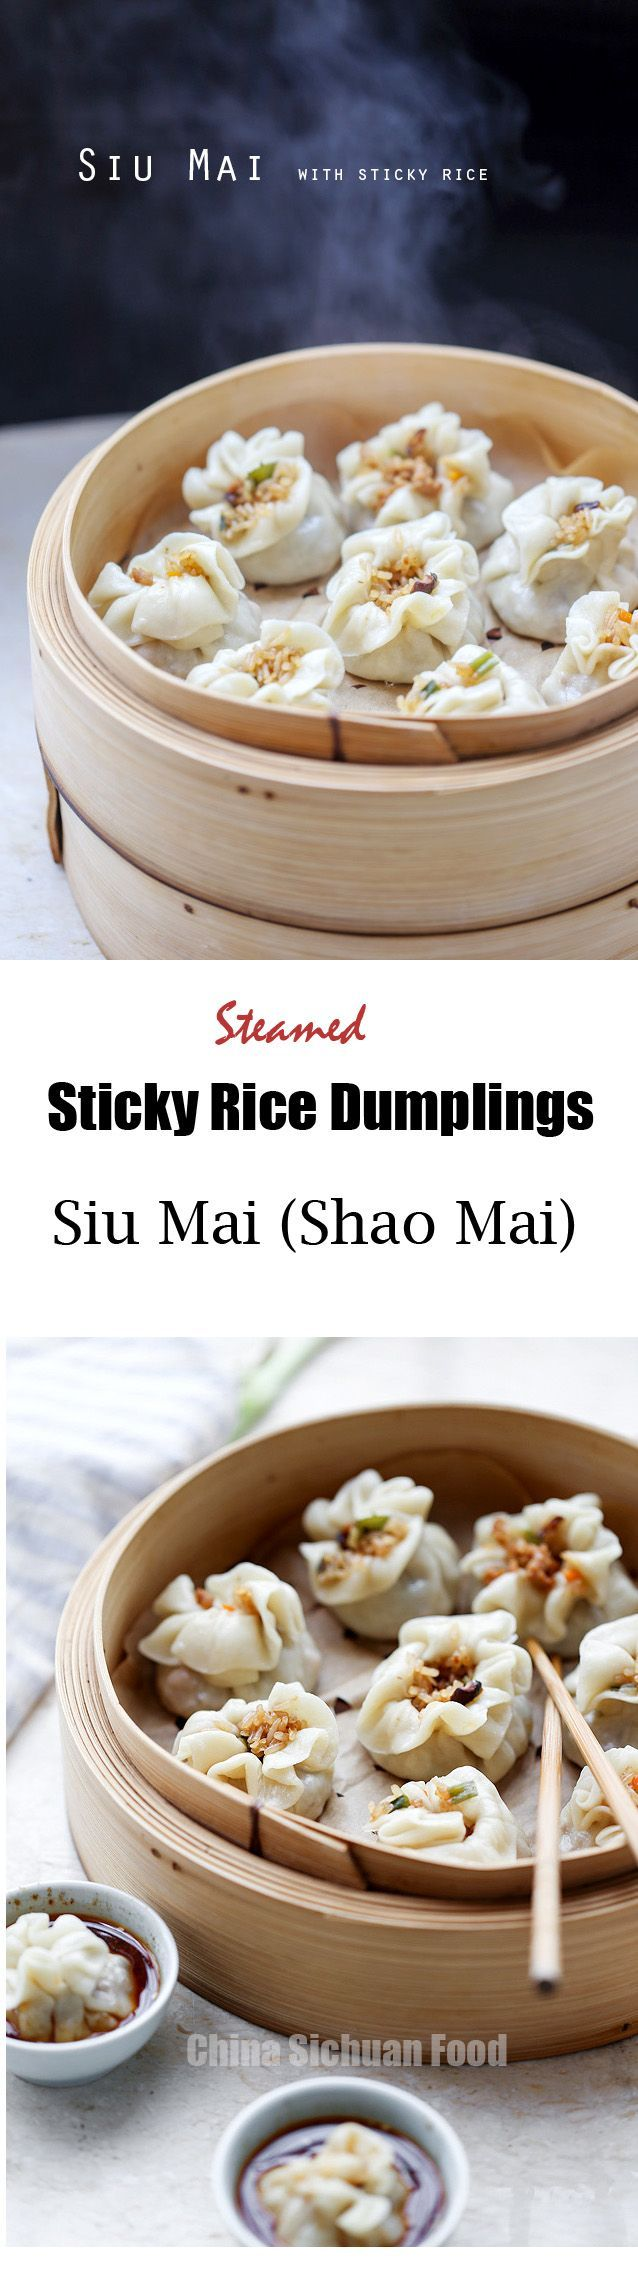 Siu Mai Recipe (Shao Mai) with Sticky Rice #Siu  Mai #sticky #rice | ChinaSichuanFood.com